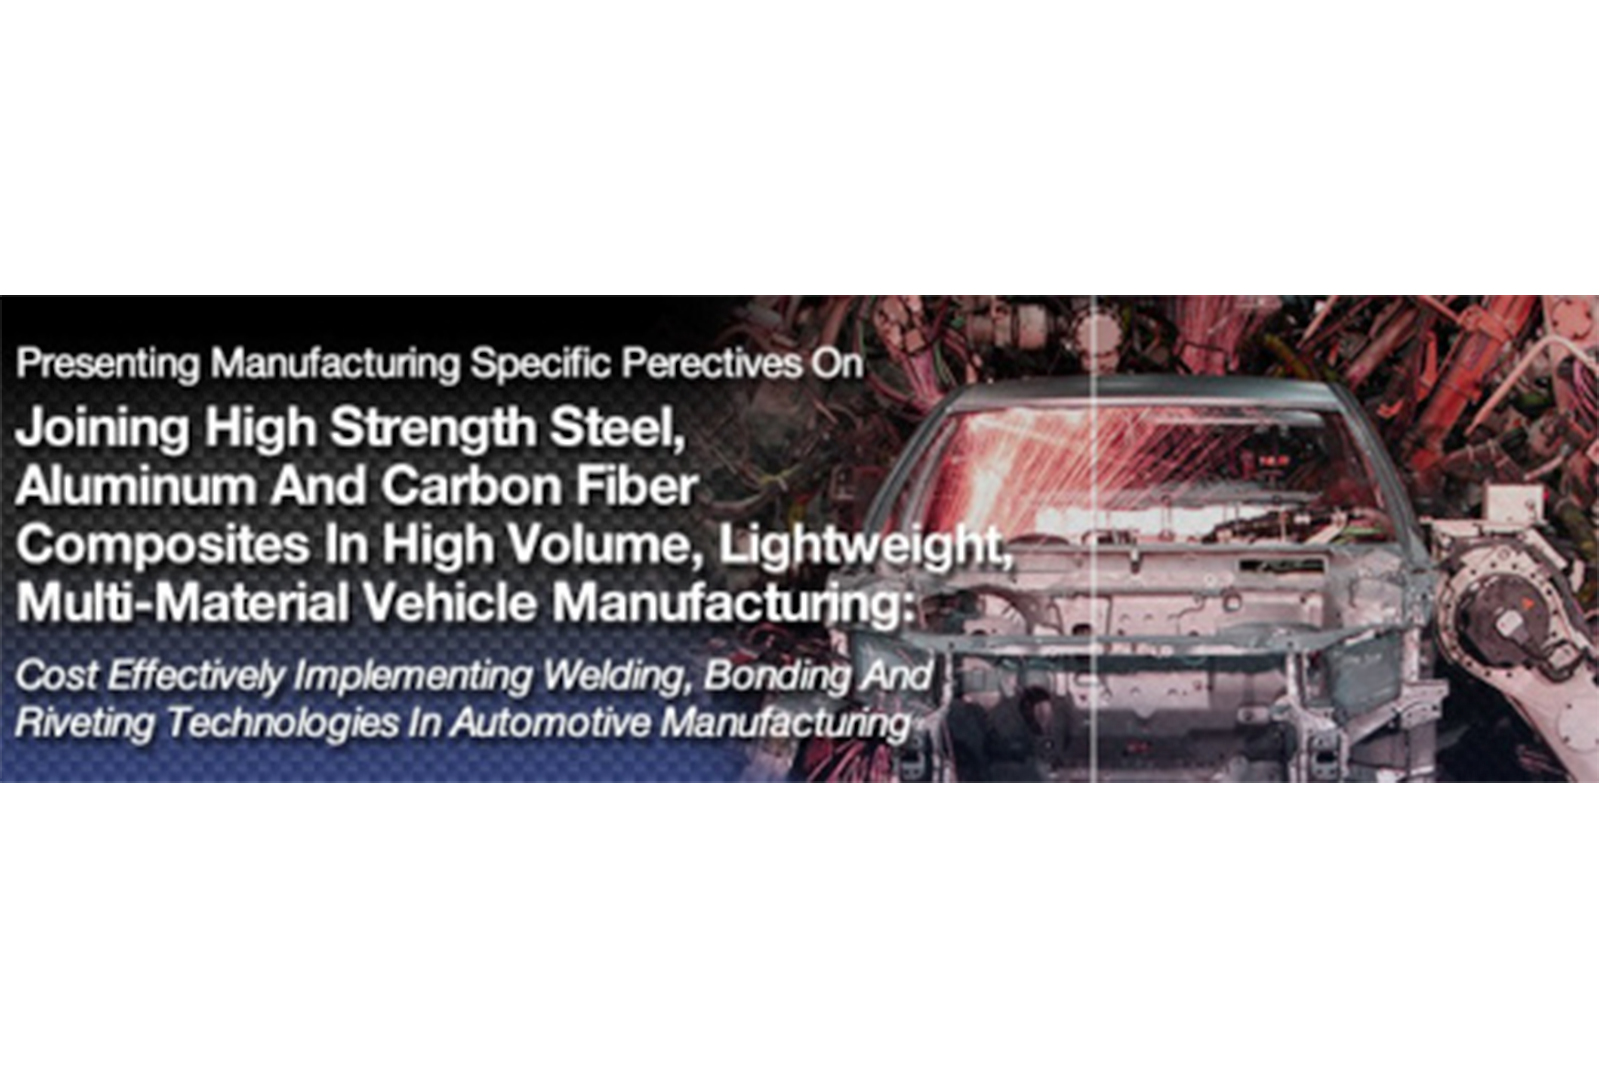 Global Lightweight Vehicle Manufacturing Congress To